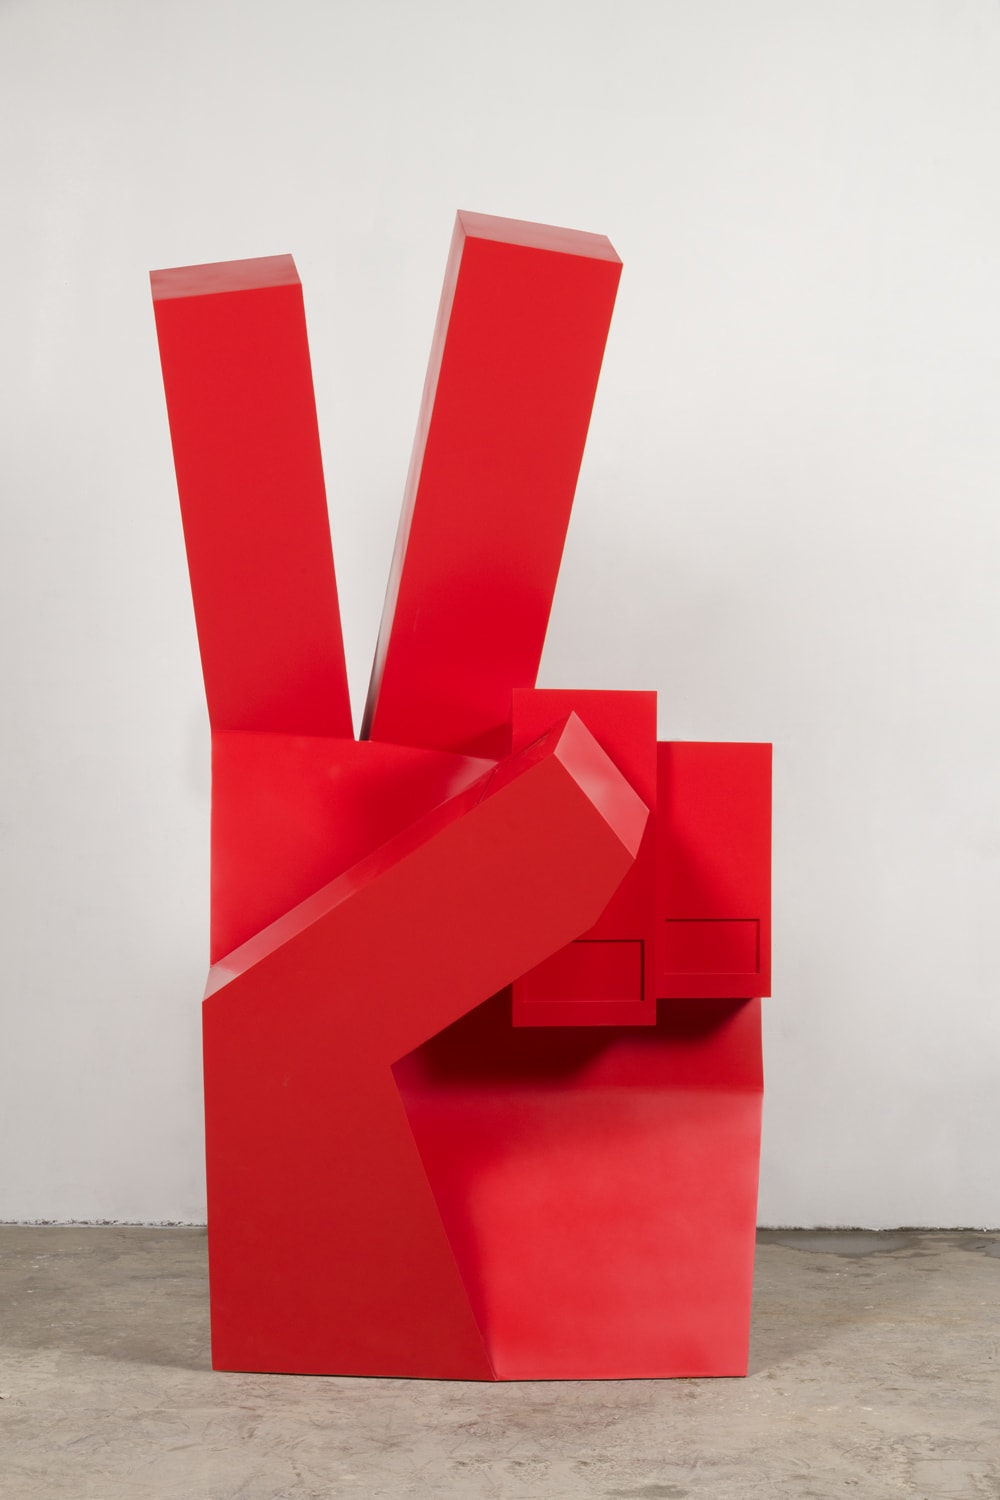 Nathan Mabry, Heavy Handed (Red Piece), 2019